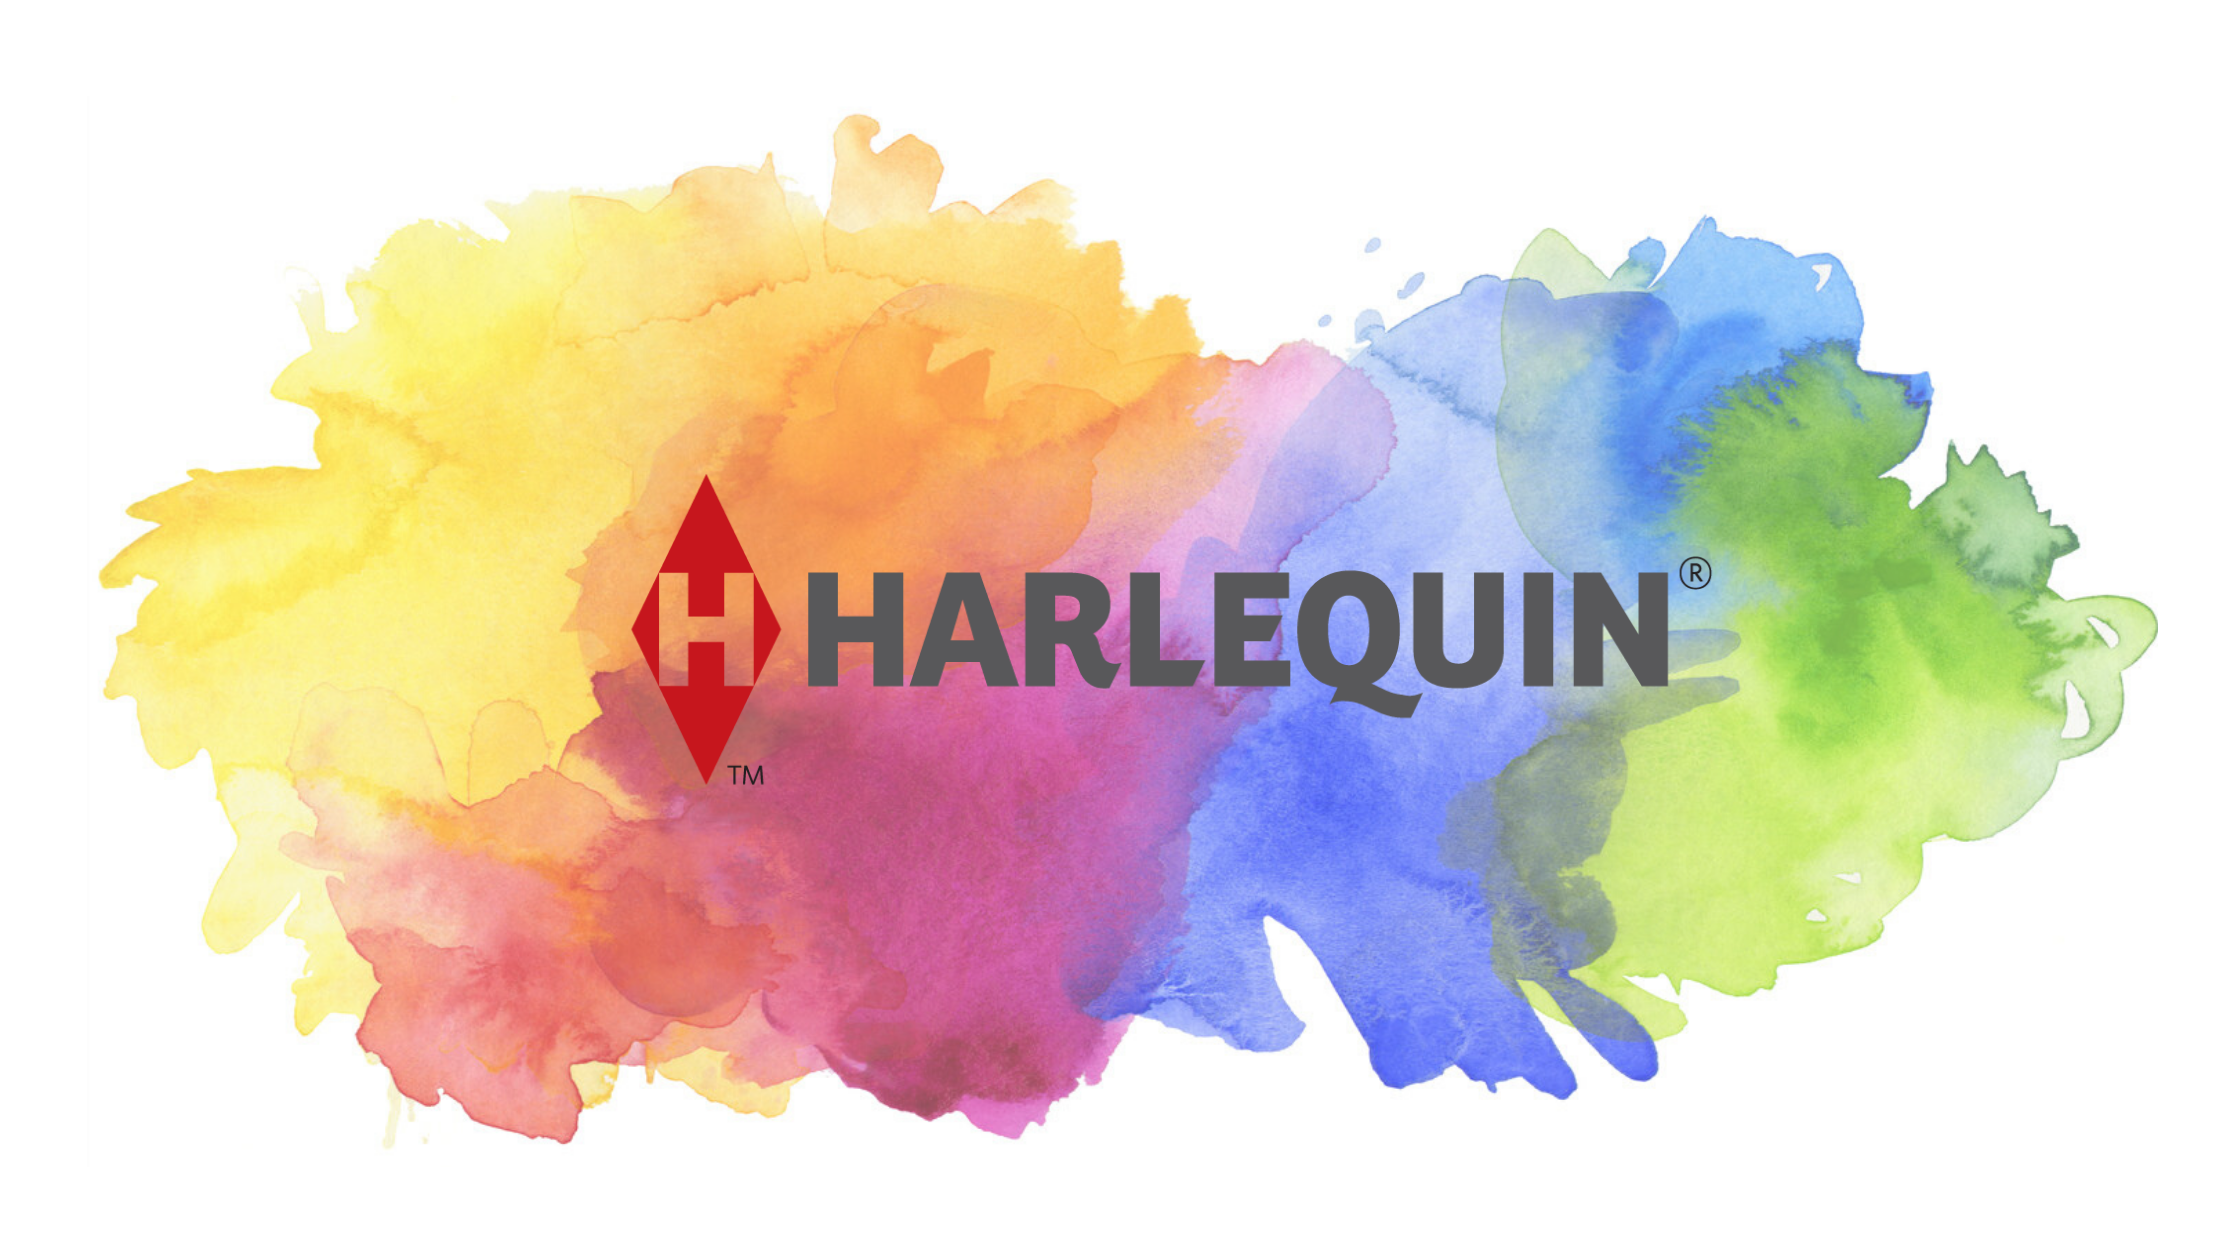 image_Harlequin logo_Water colour splash